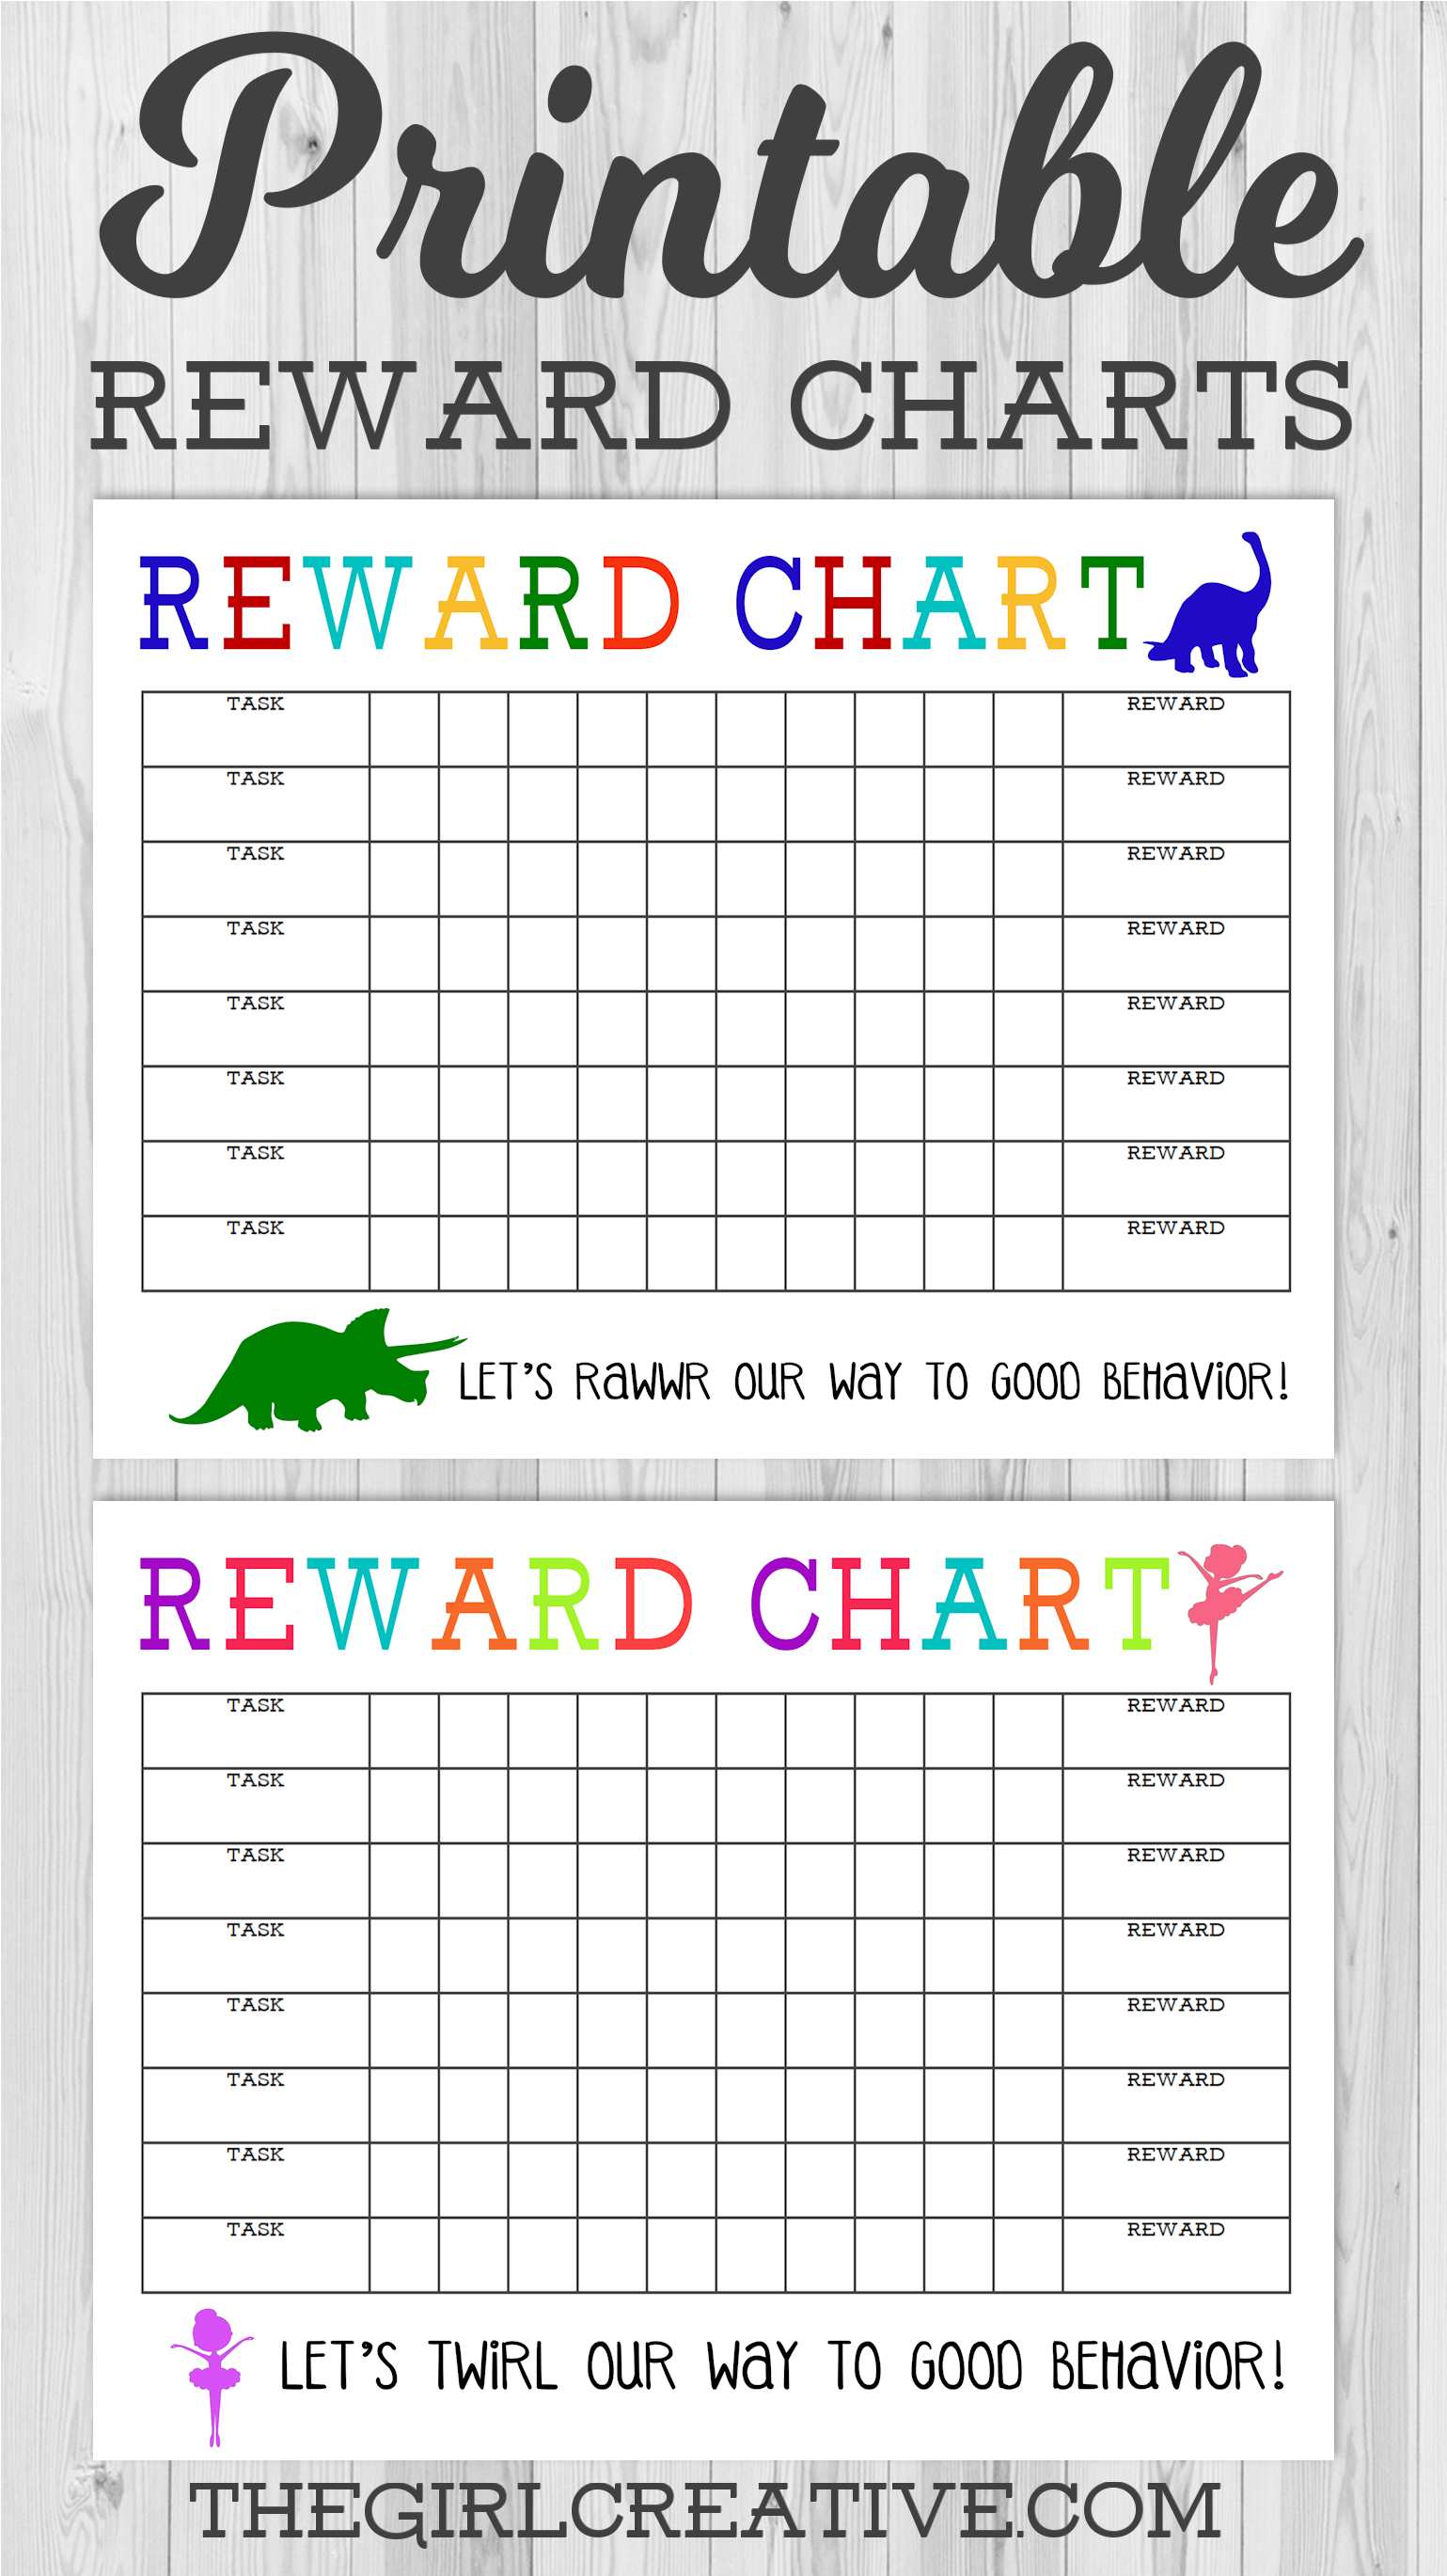 Printable Reward Charts For Kids | Room Surf